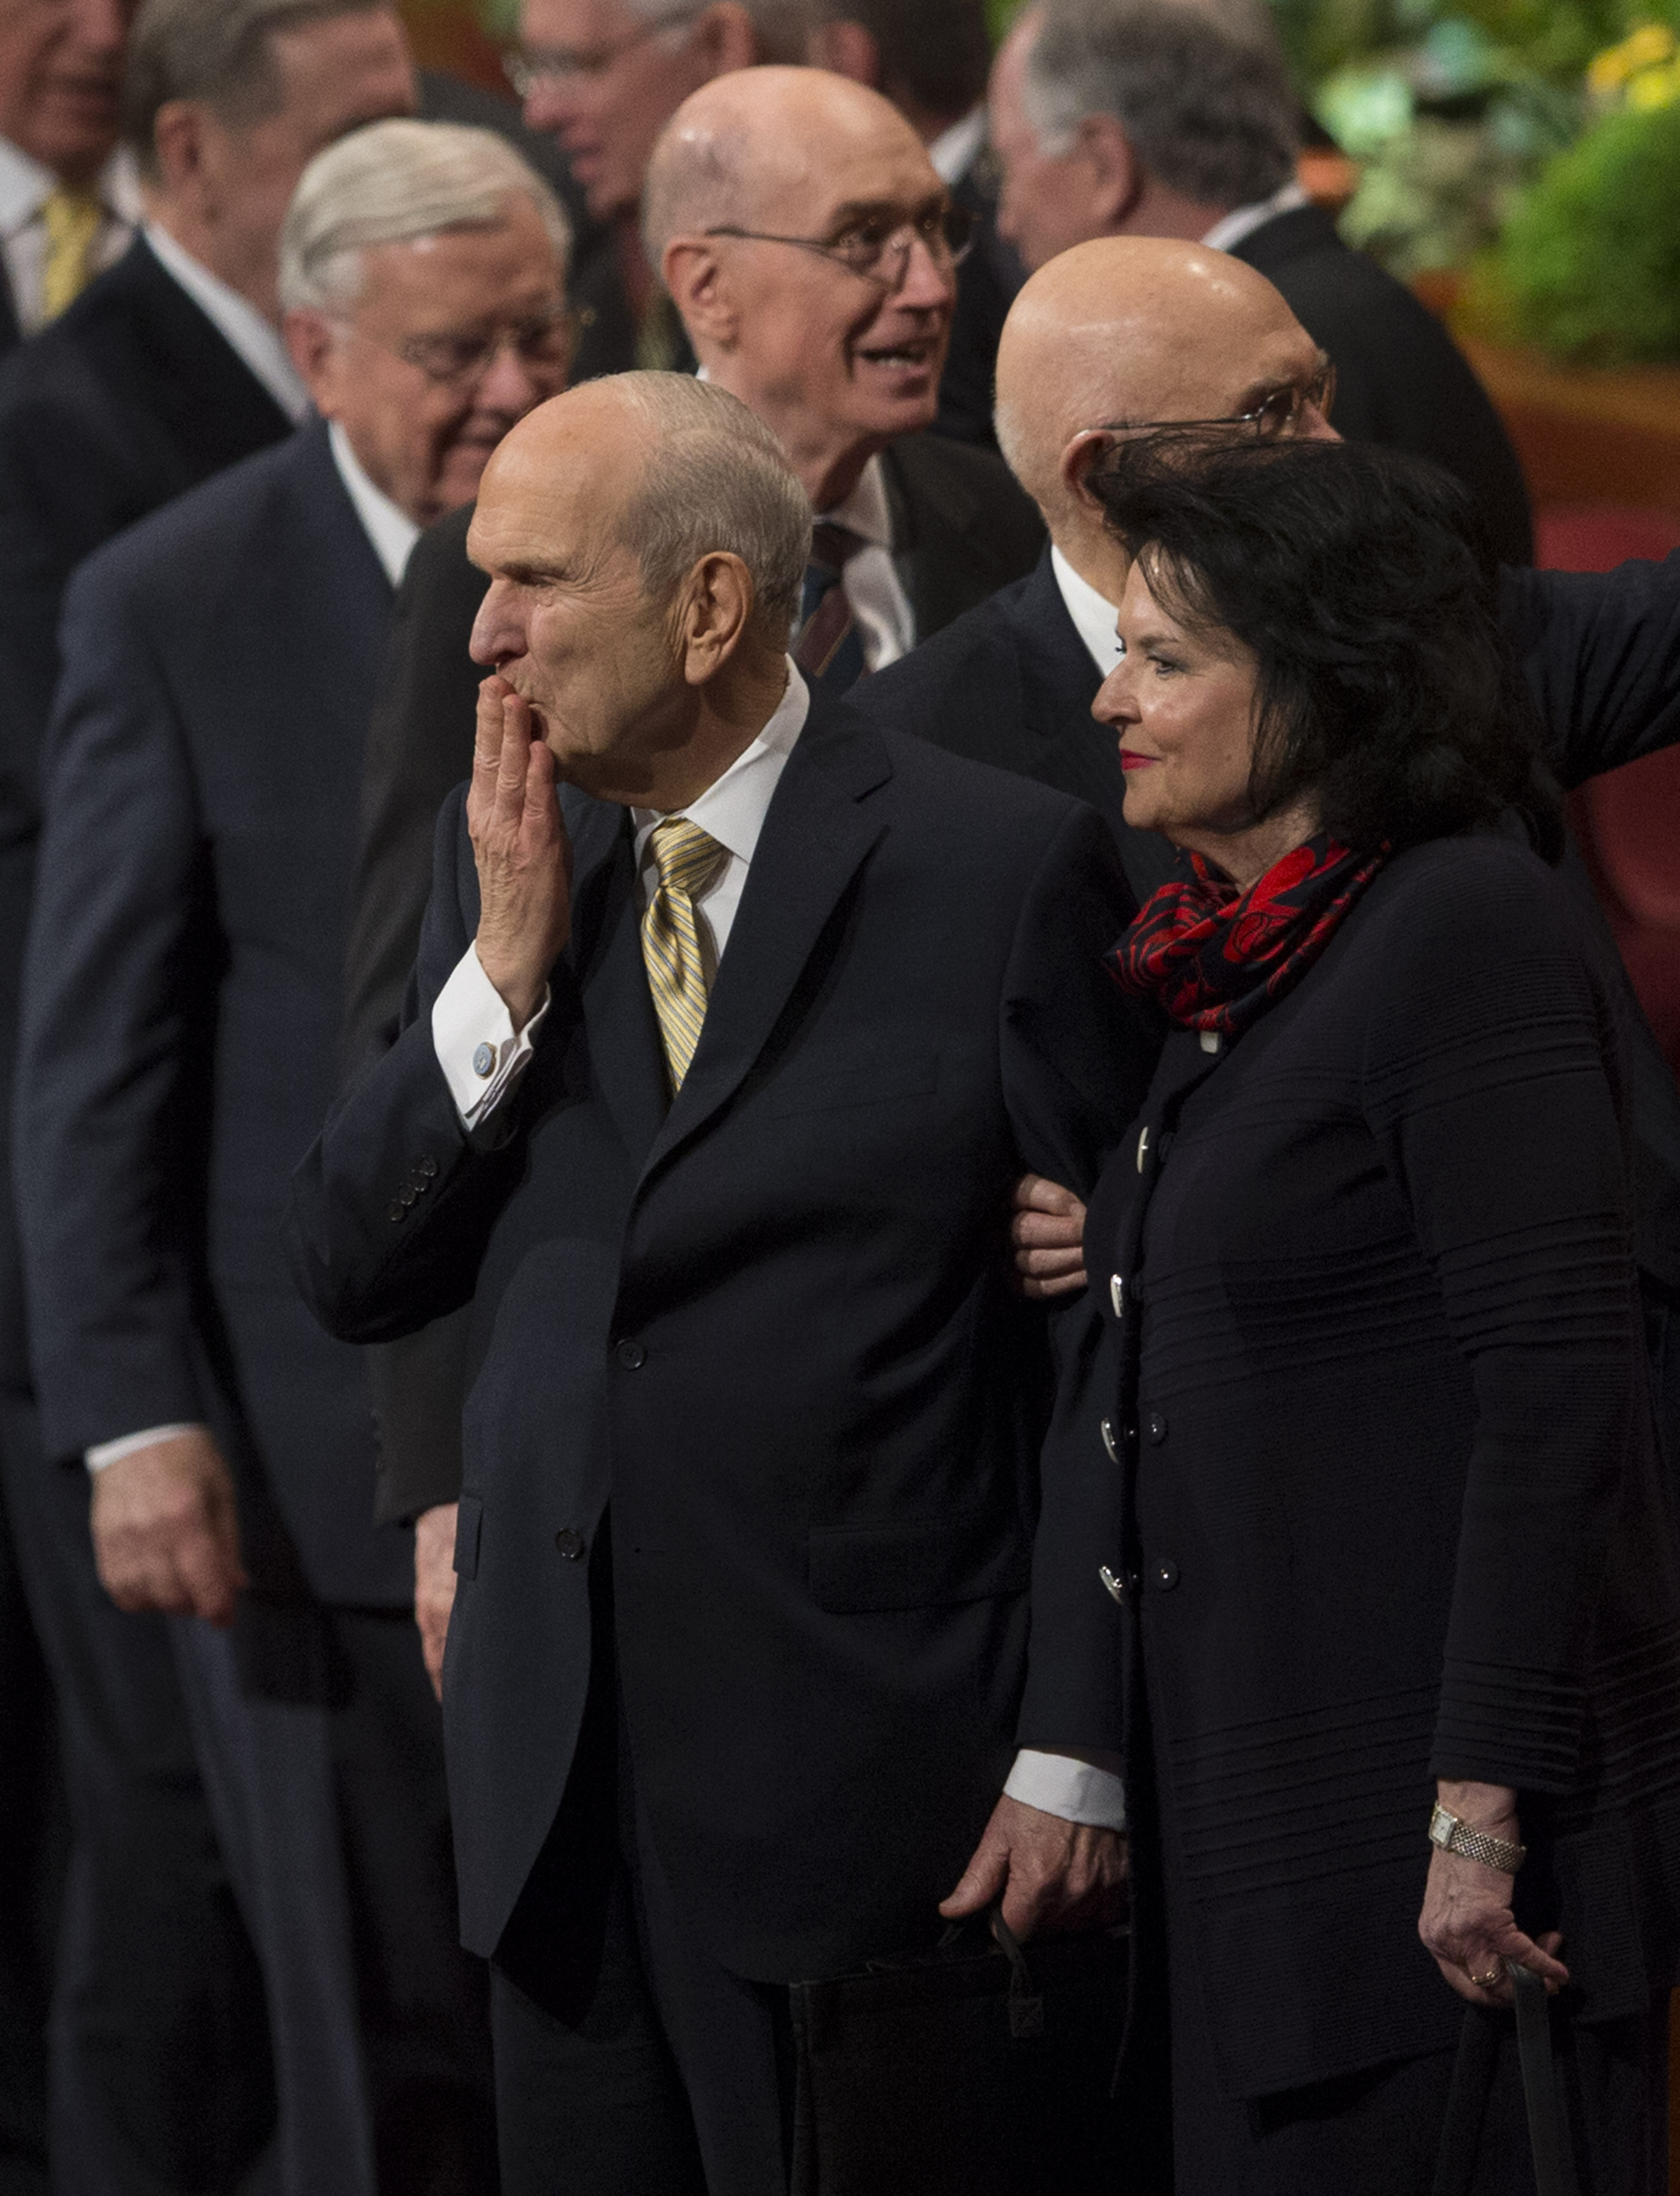 President Russell M. Nelson and his wife, Sister Wendy Nelson, exit following the Sunday afternoon session of the 188th Annual General Conference of The Church of Jesus Christ of Latter-day Saints, in the Conference Center in Salt Lake City on Sunday, April 1, 2018.